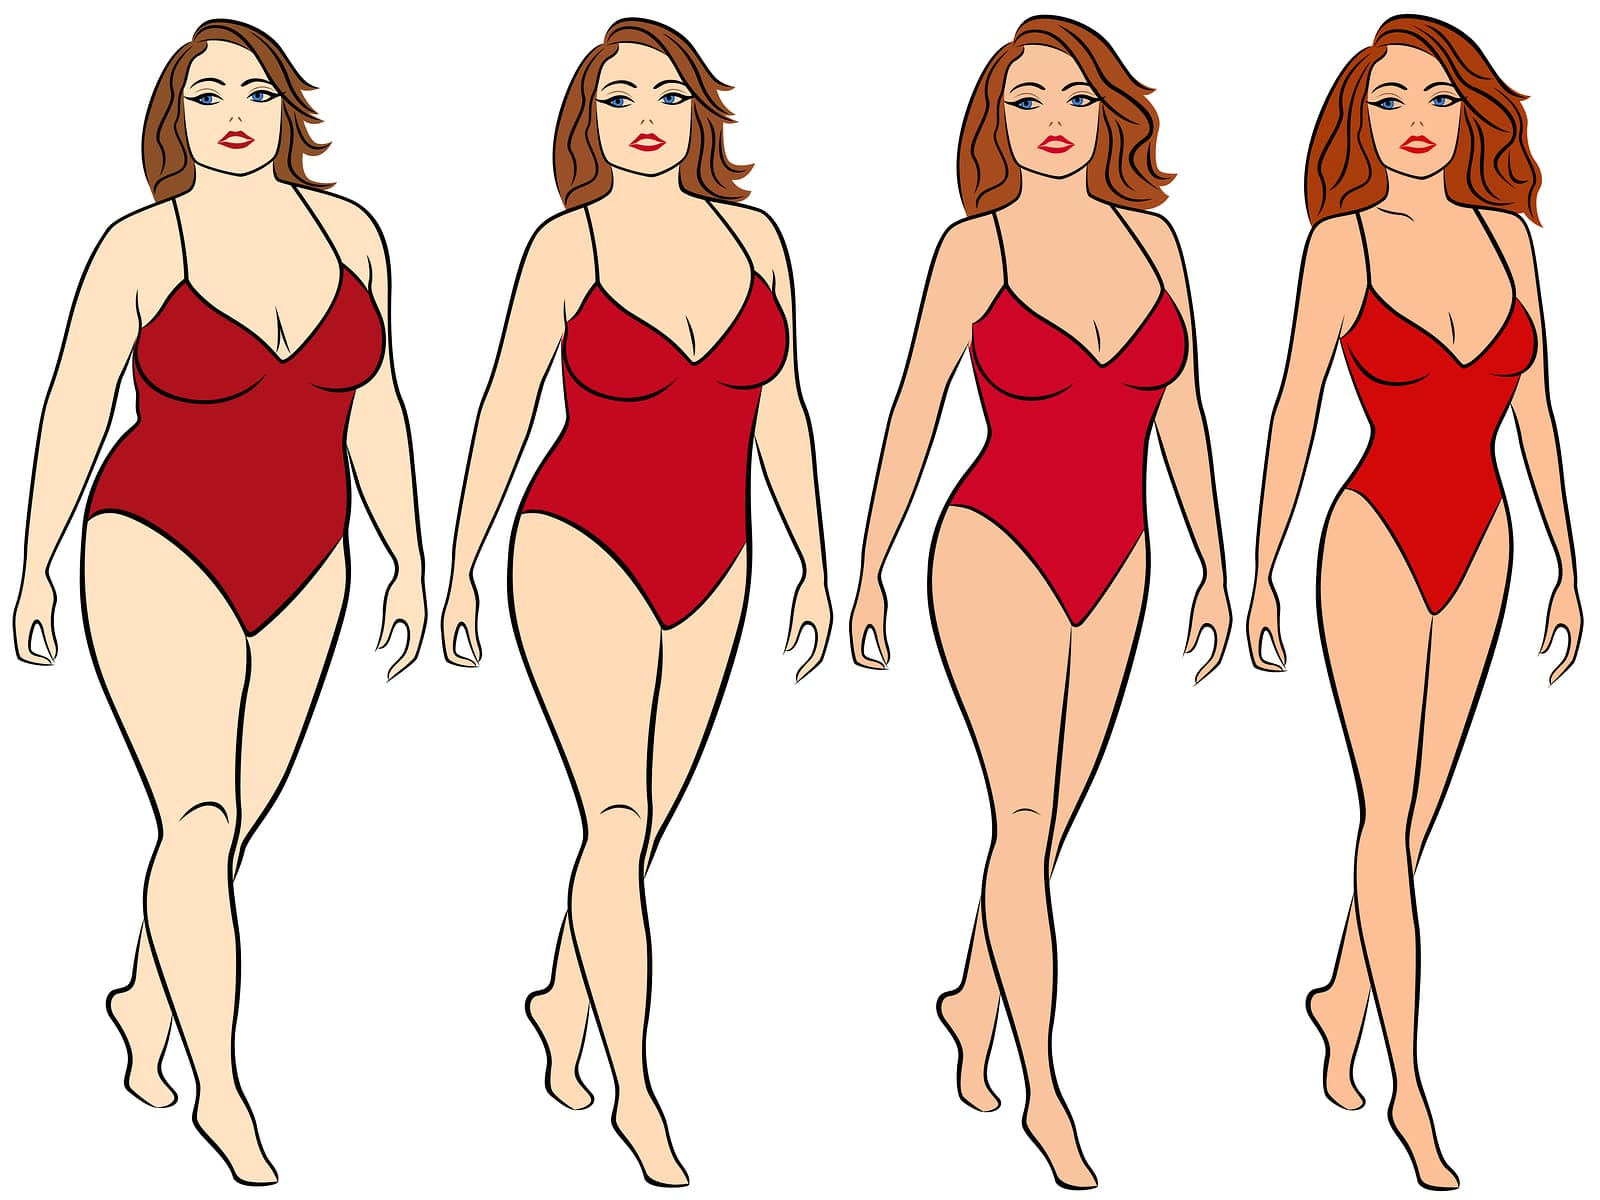 Female On The Way To Lose Weight